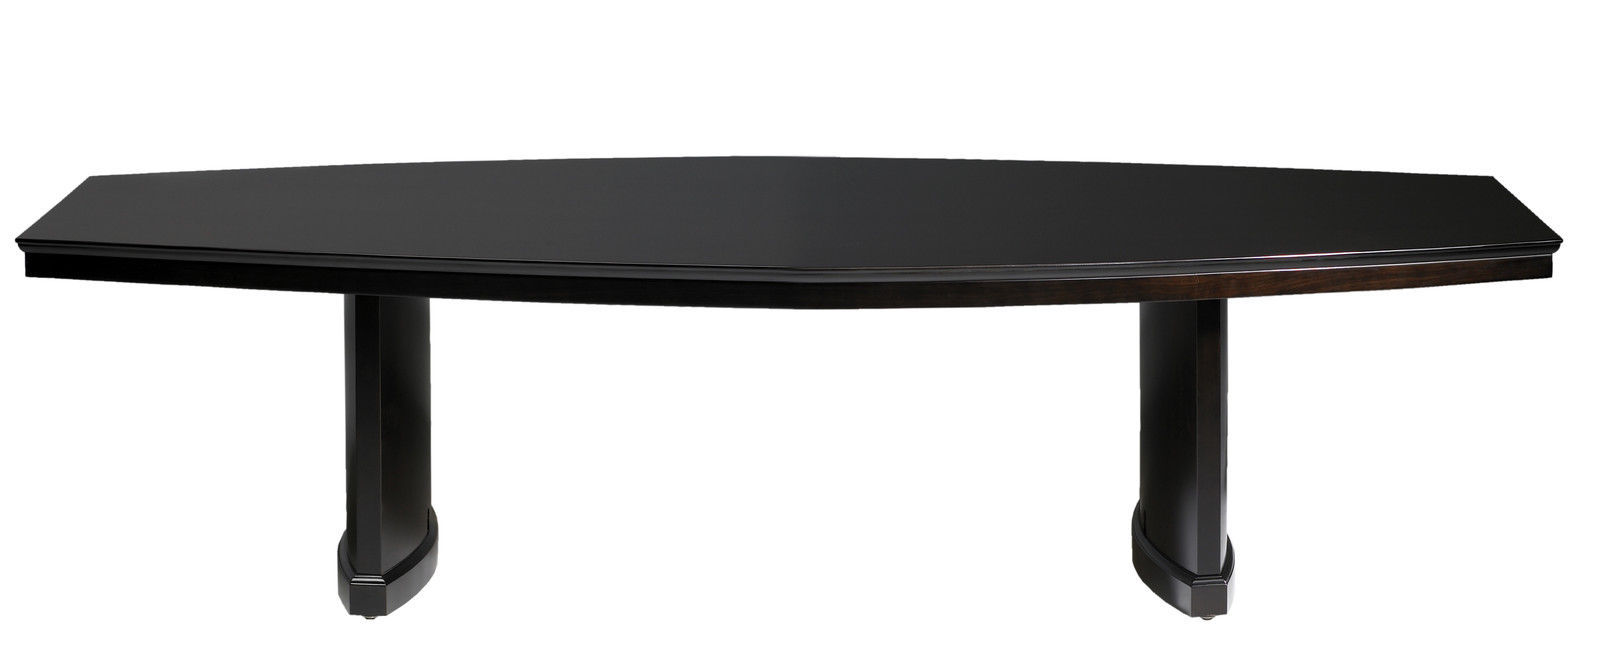 mayline sorrento boat shaped conference room table